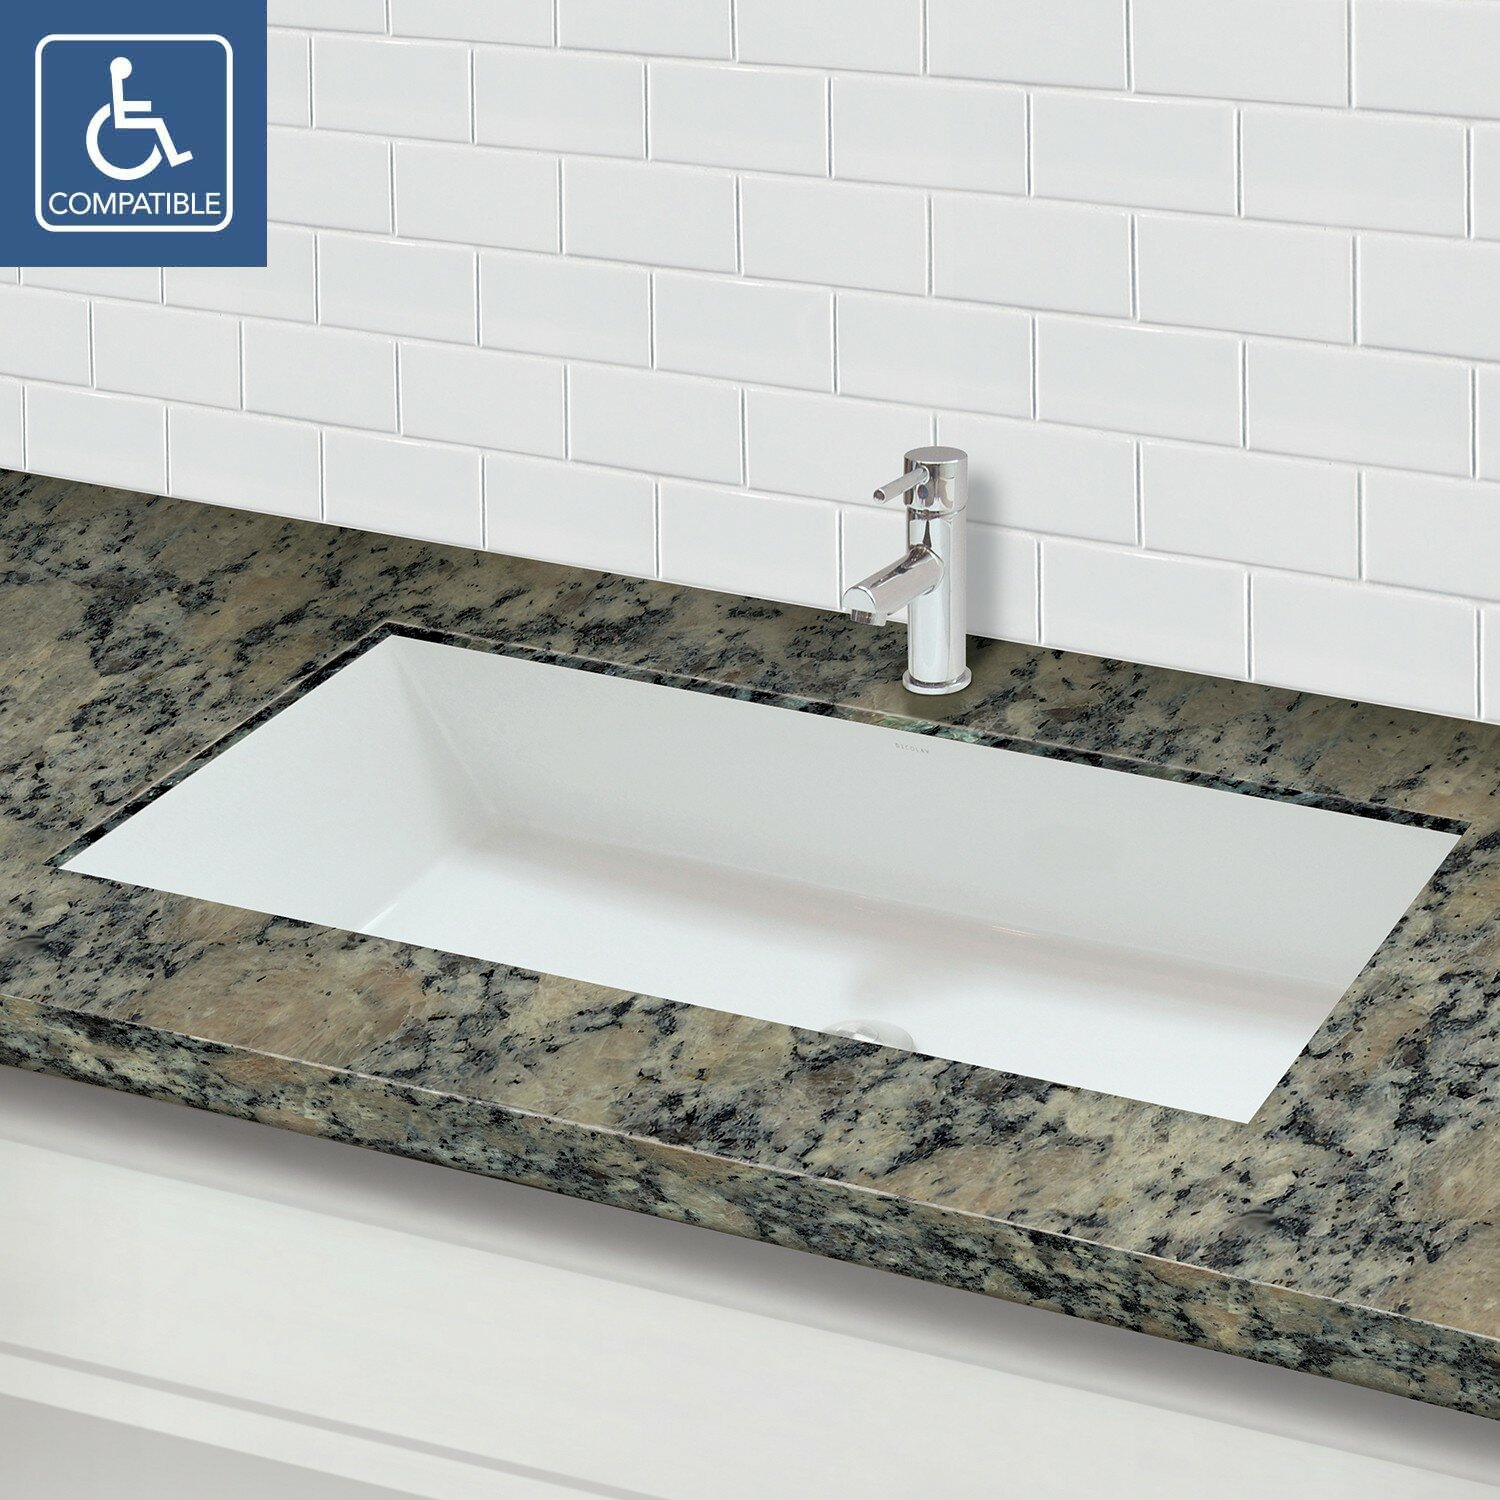 Solid Surface Bathroom Sink: DECOLAV Solid Surface Rectangular Undermount Lavatory Sink